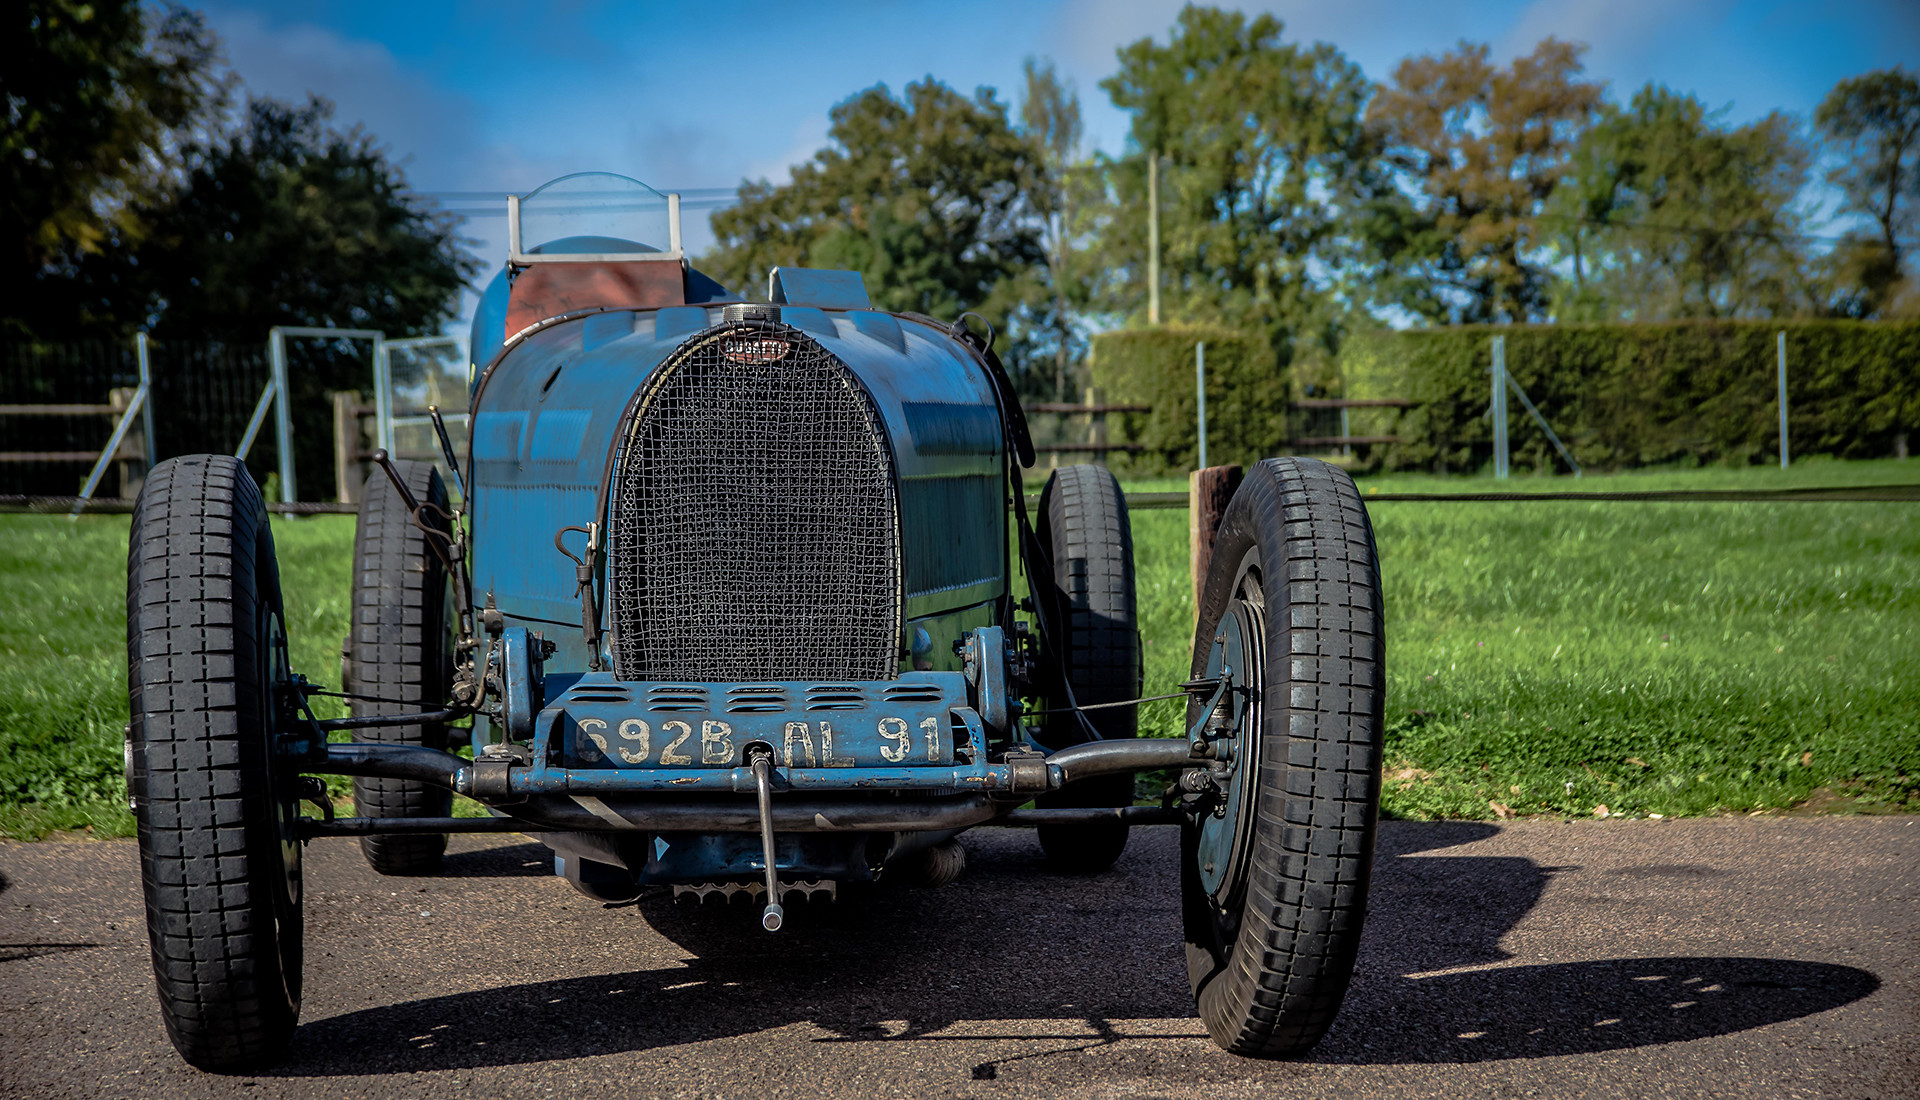 Bugatti Typ 35 photography by Foturist.de Bad Saarow Classics